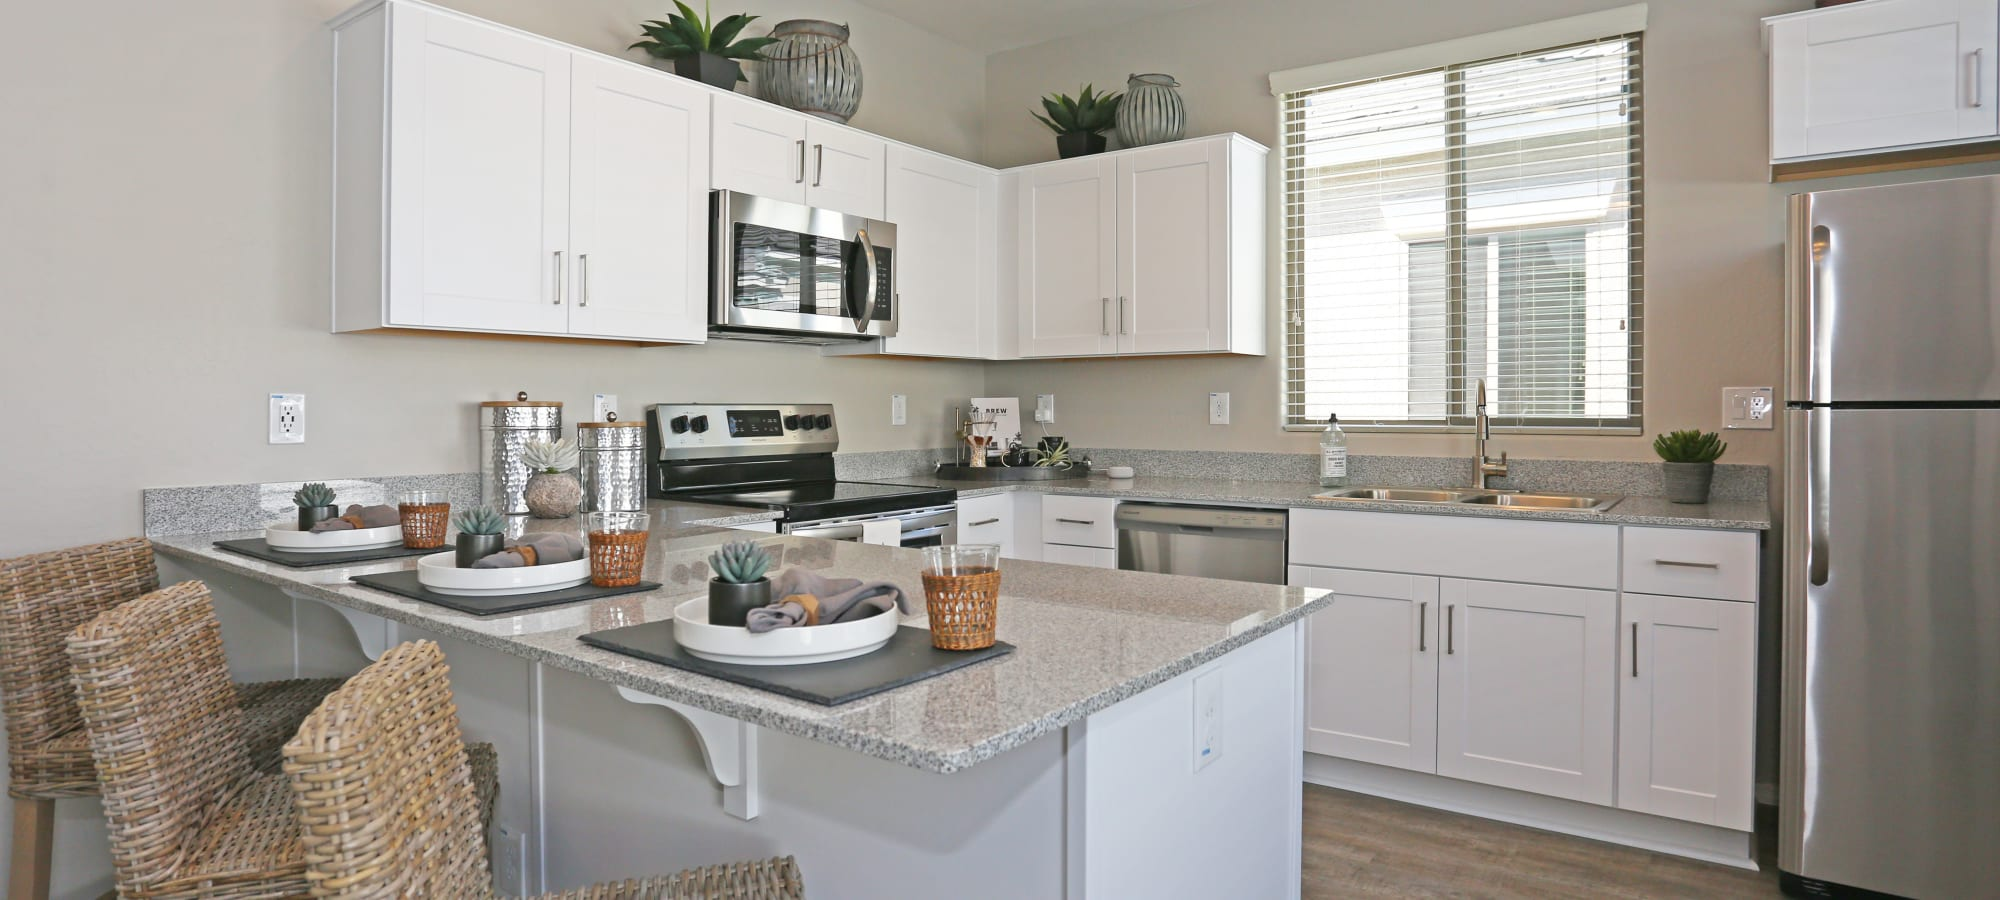 Granite countertops in a model home's kitchen at Christopher Todd Communities At Estrella Commons in Goodyear, Arizona